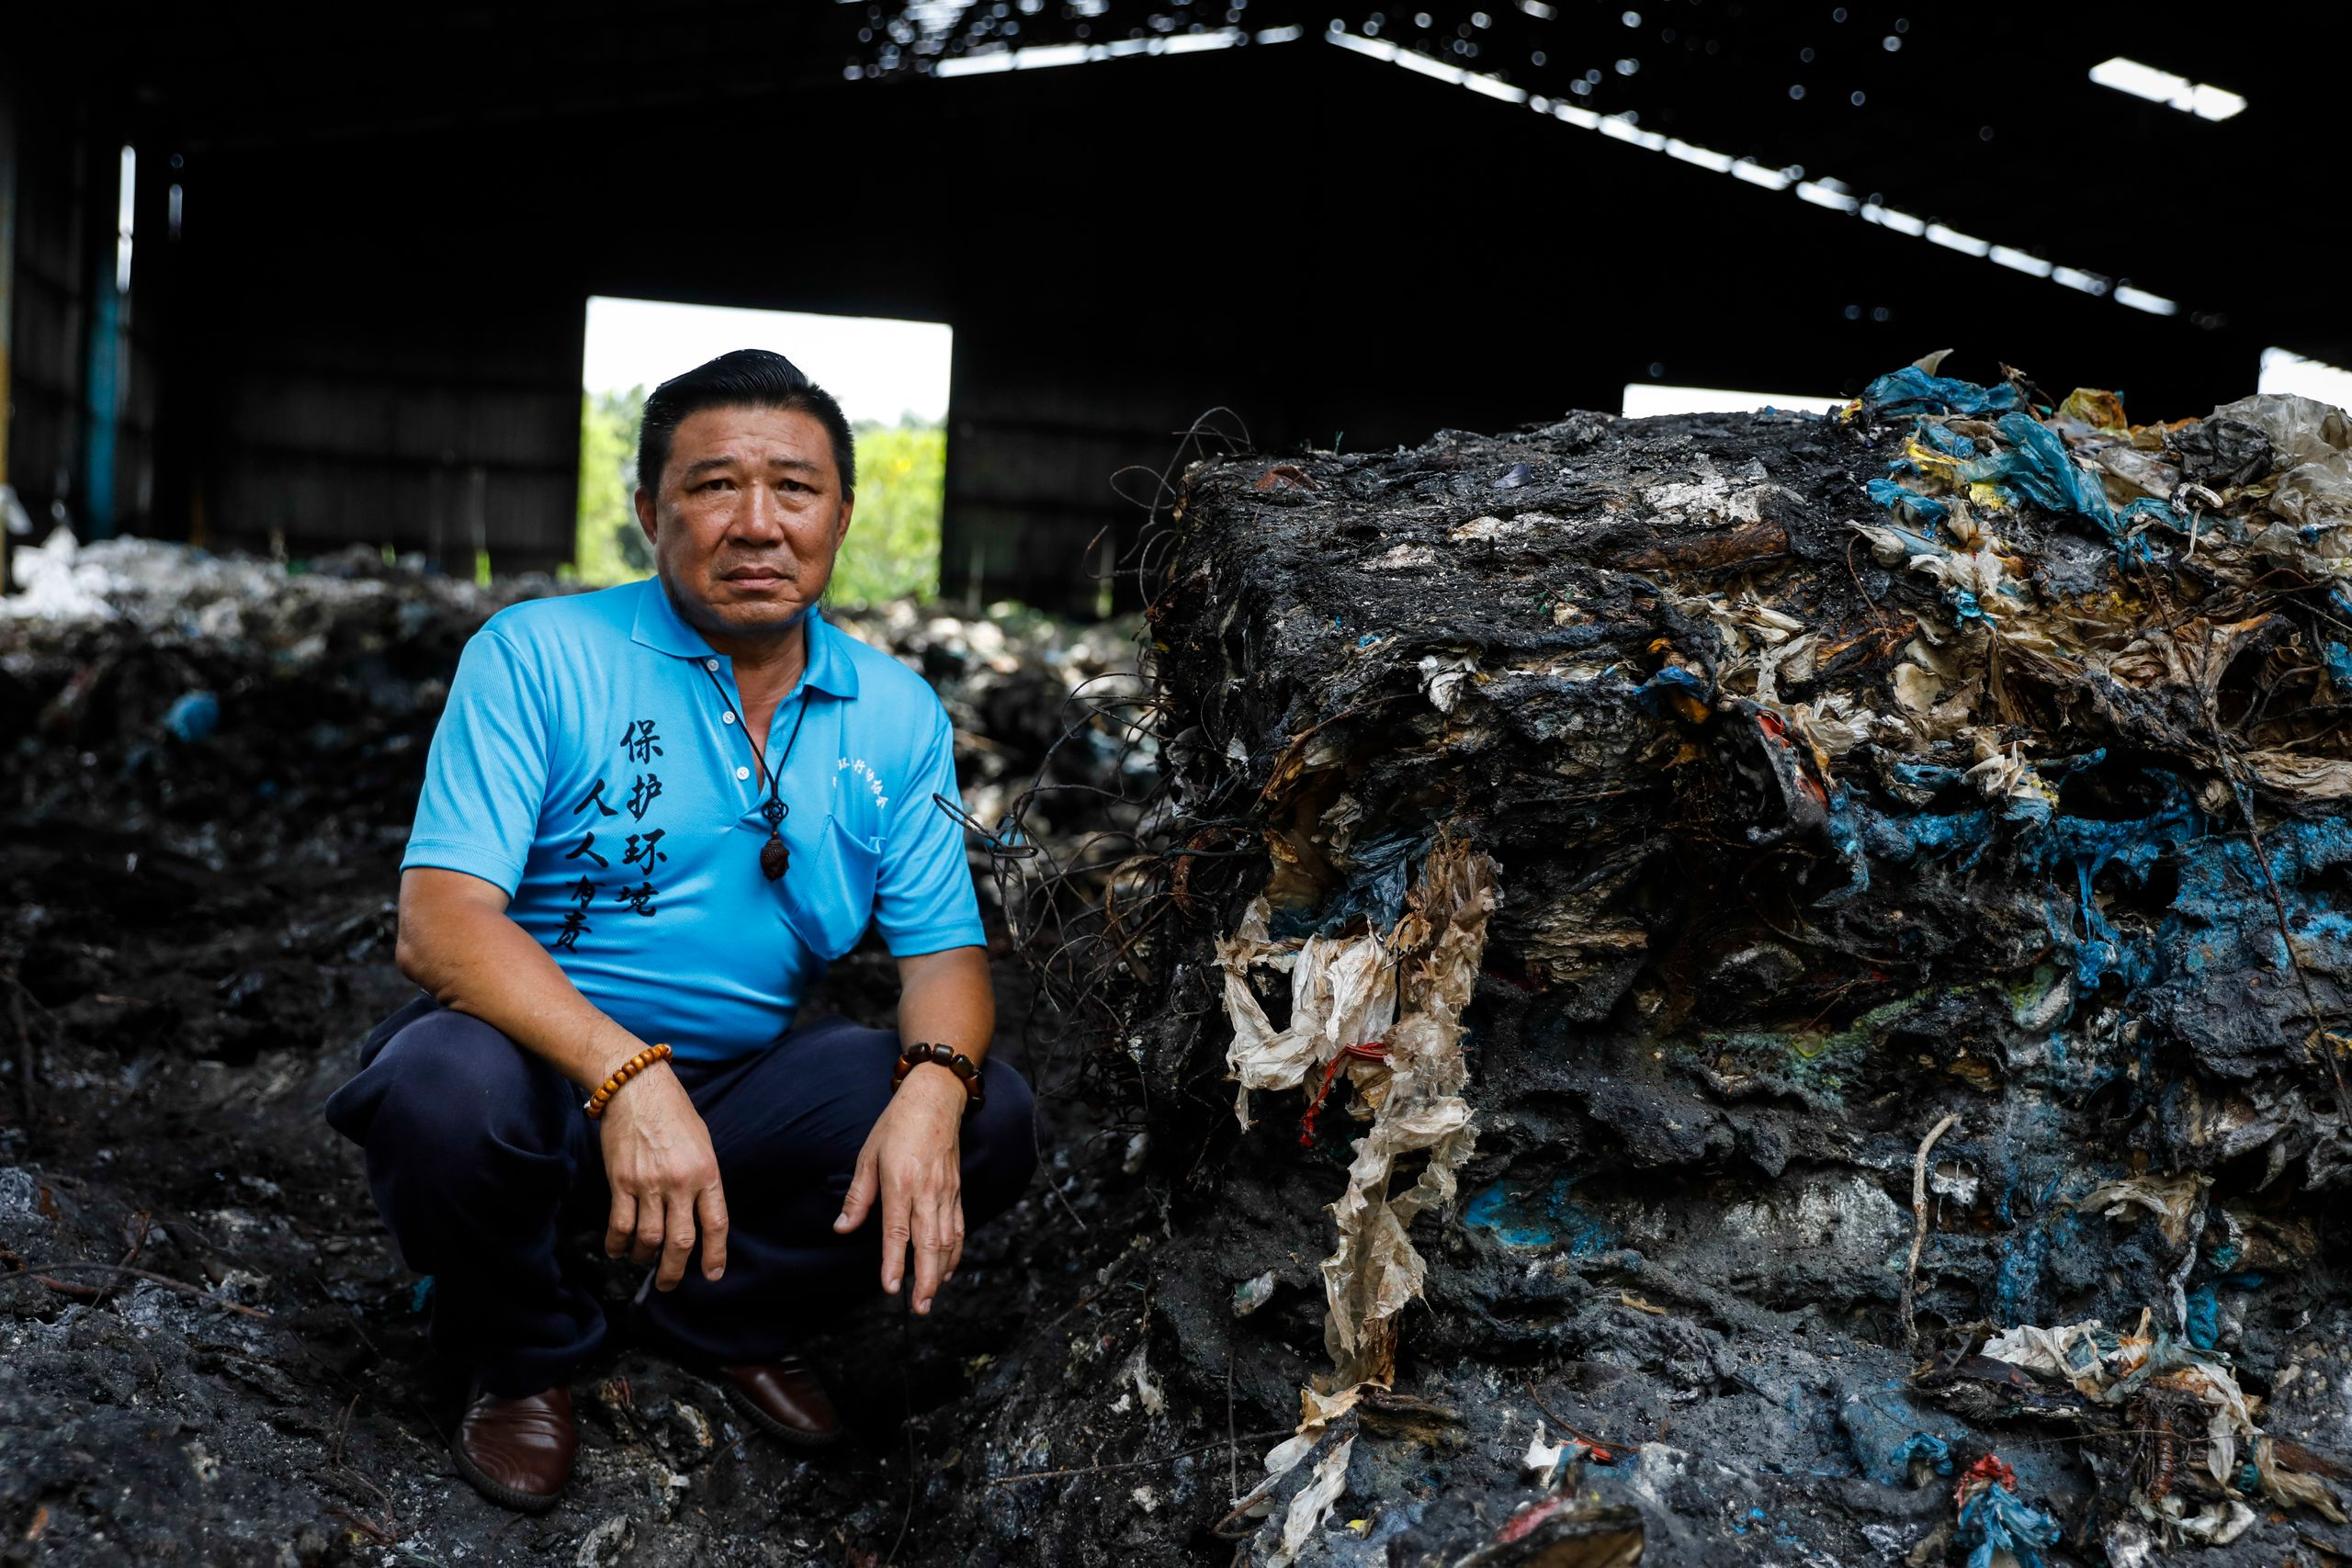 Tan, a volunteer, poses for a portrait at an illegal plastic recycling factory in Kuala Langat.